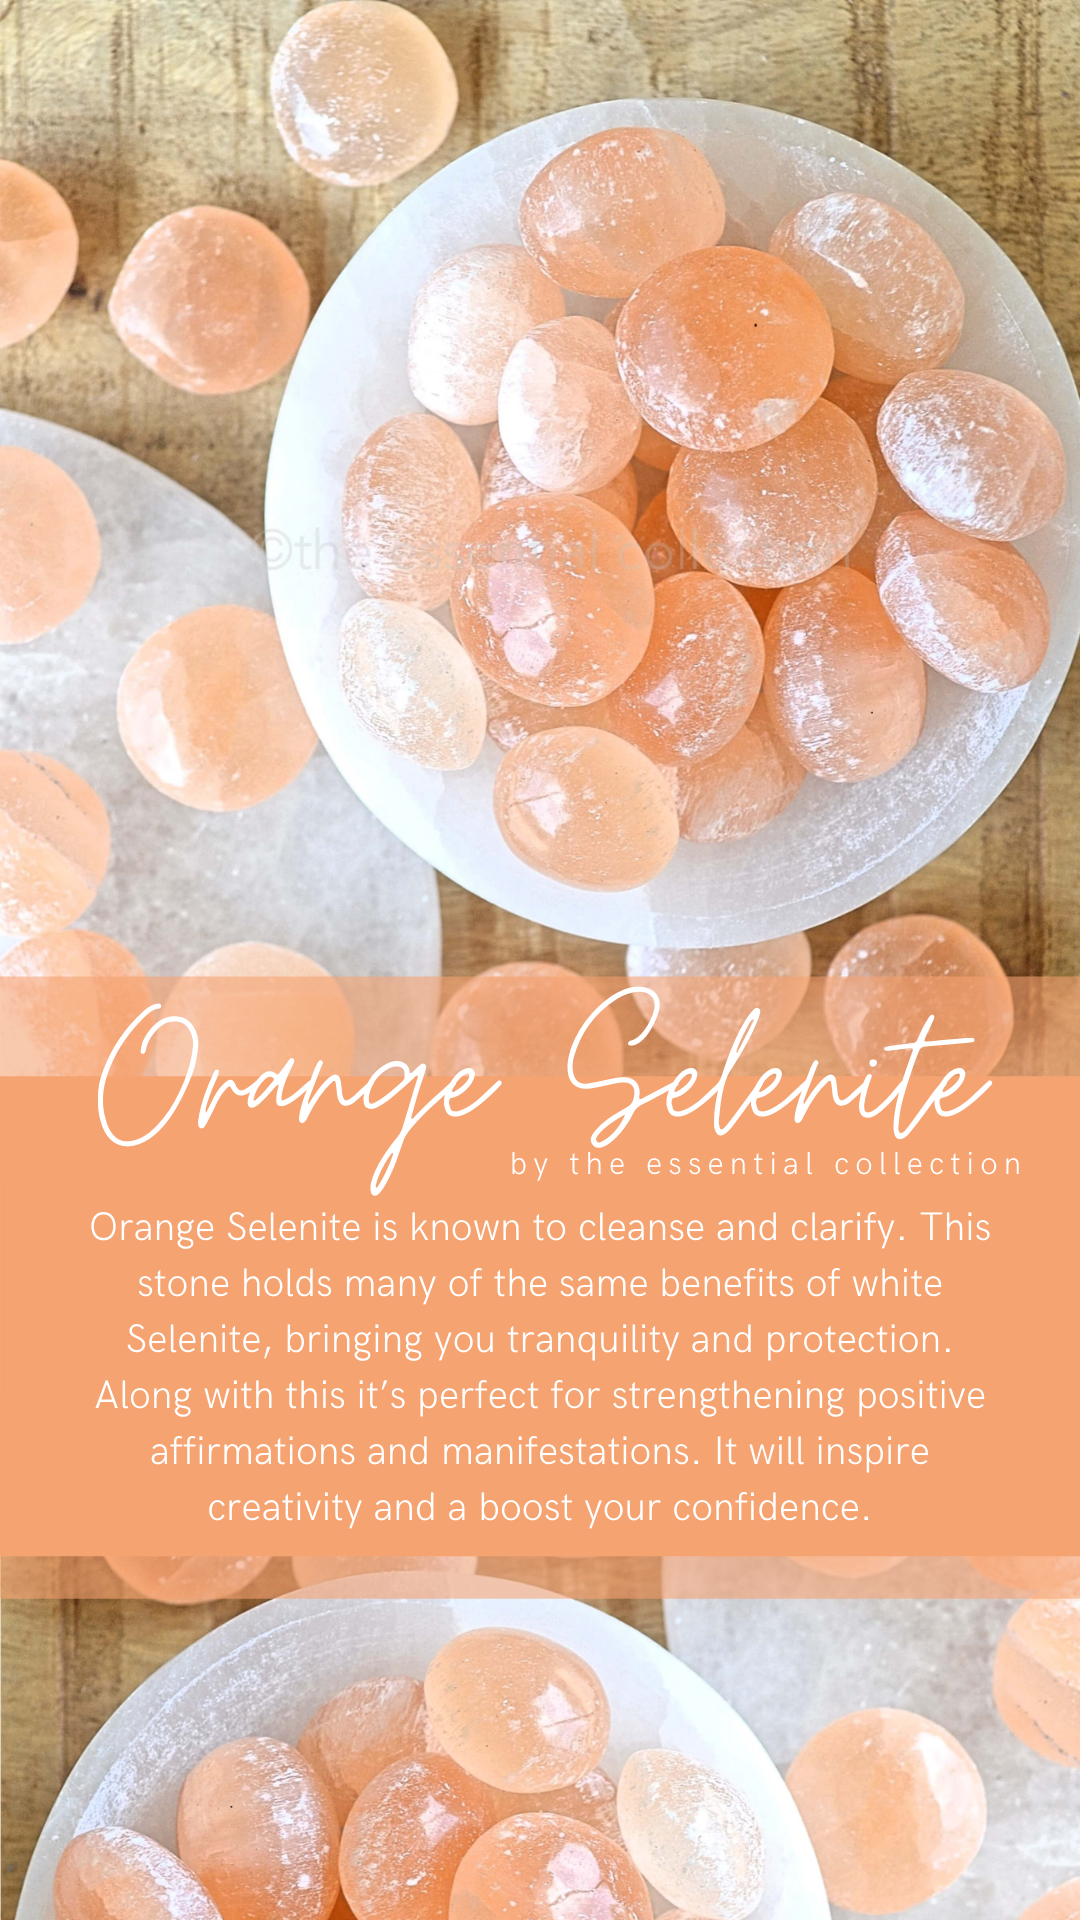 Orange Selenite Meaning Crystals To Cleanse Clarify Crystal Healing Meditation Crystals Spiritual Crystals Crystals